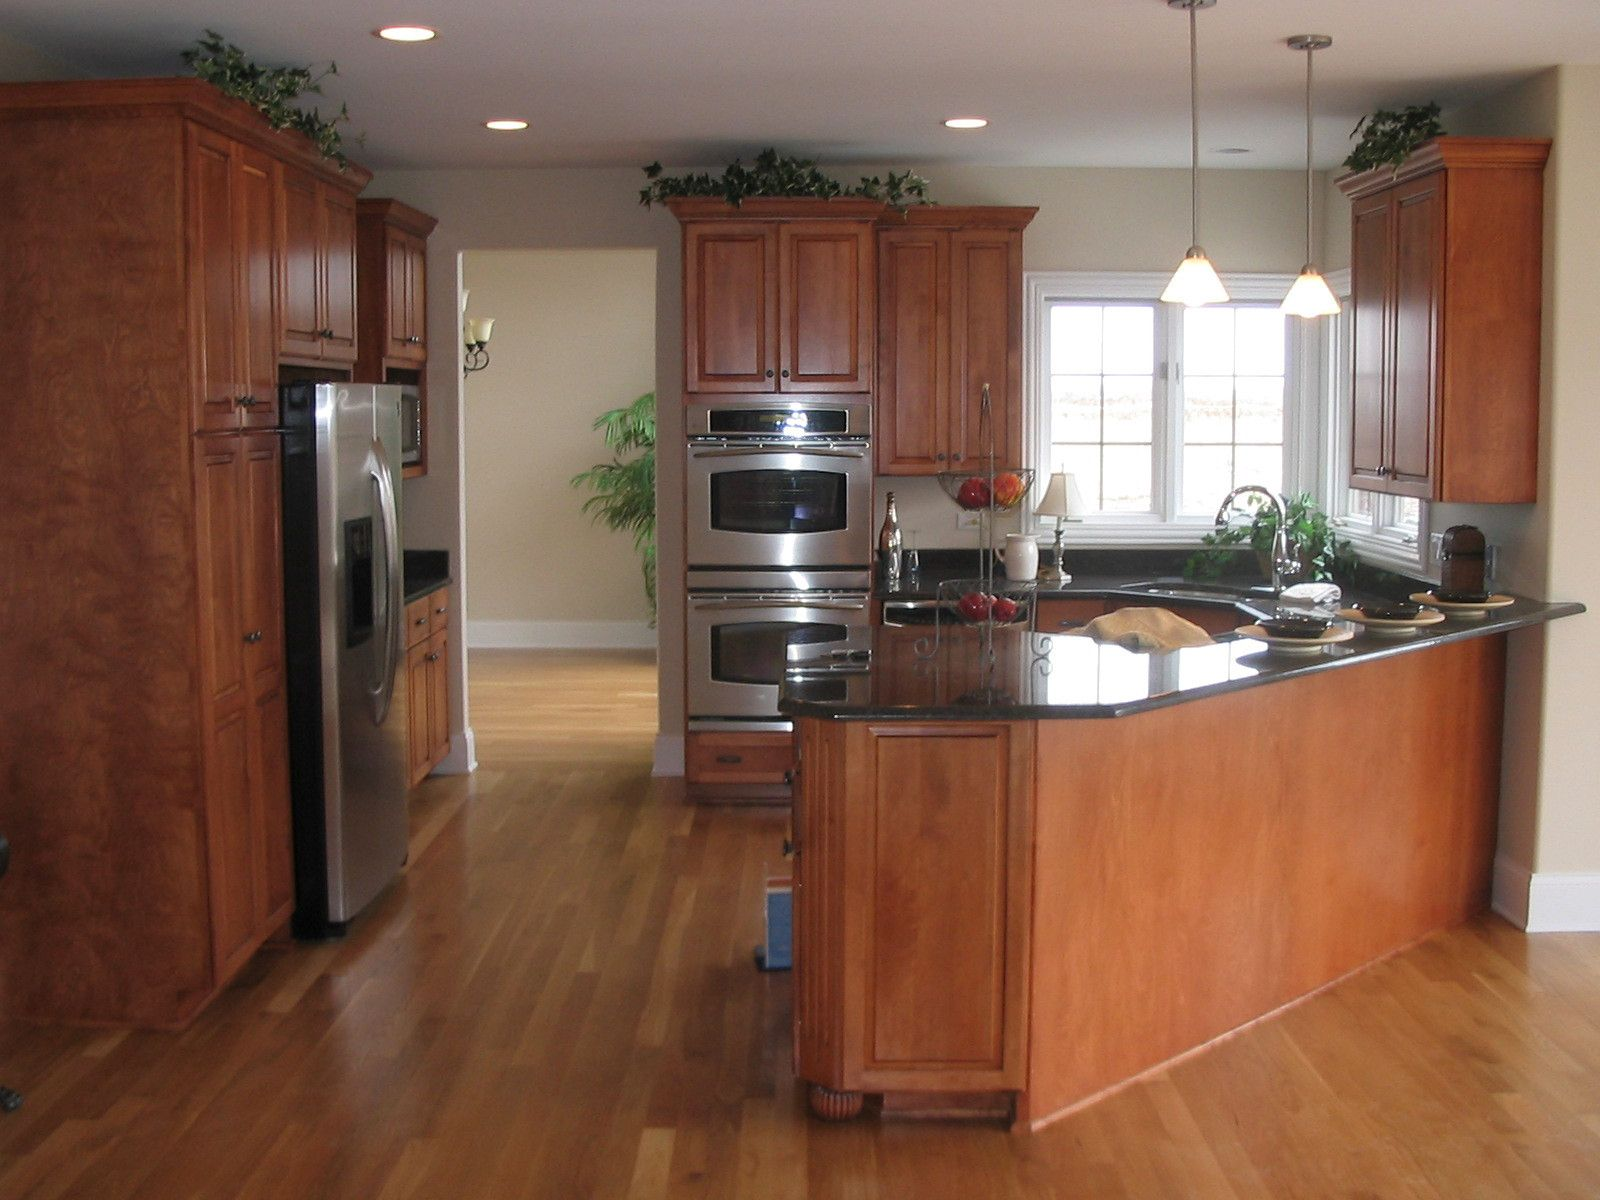 Wood Cabinets With Black Granite Counter Tops Angled